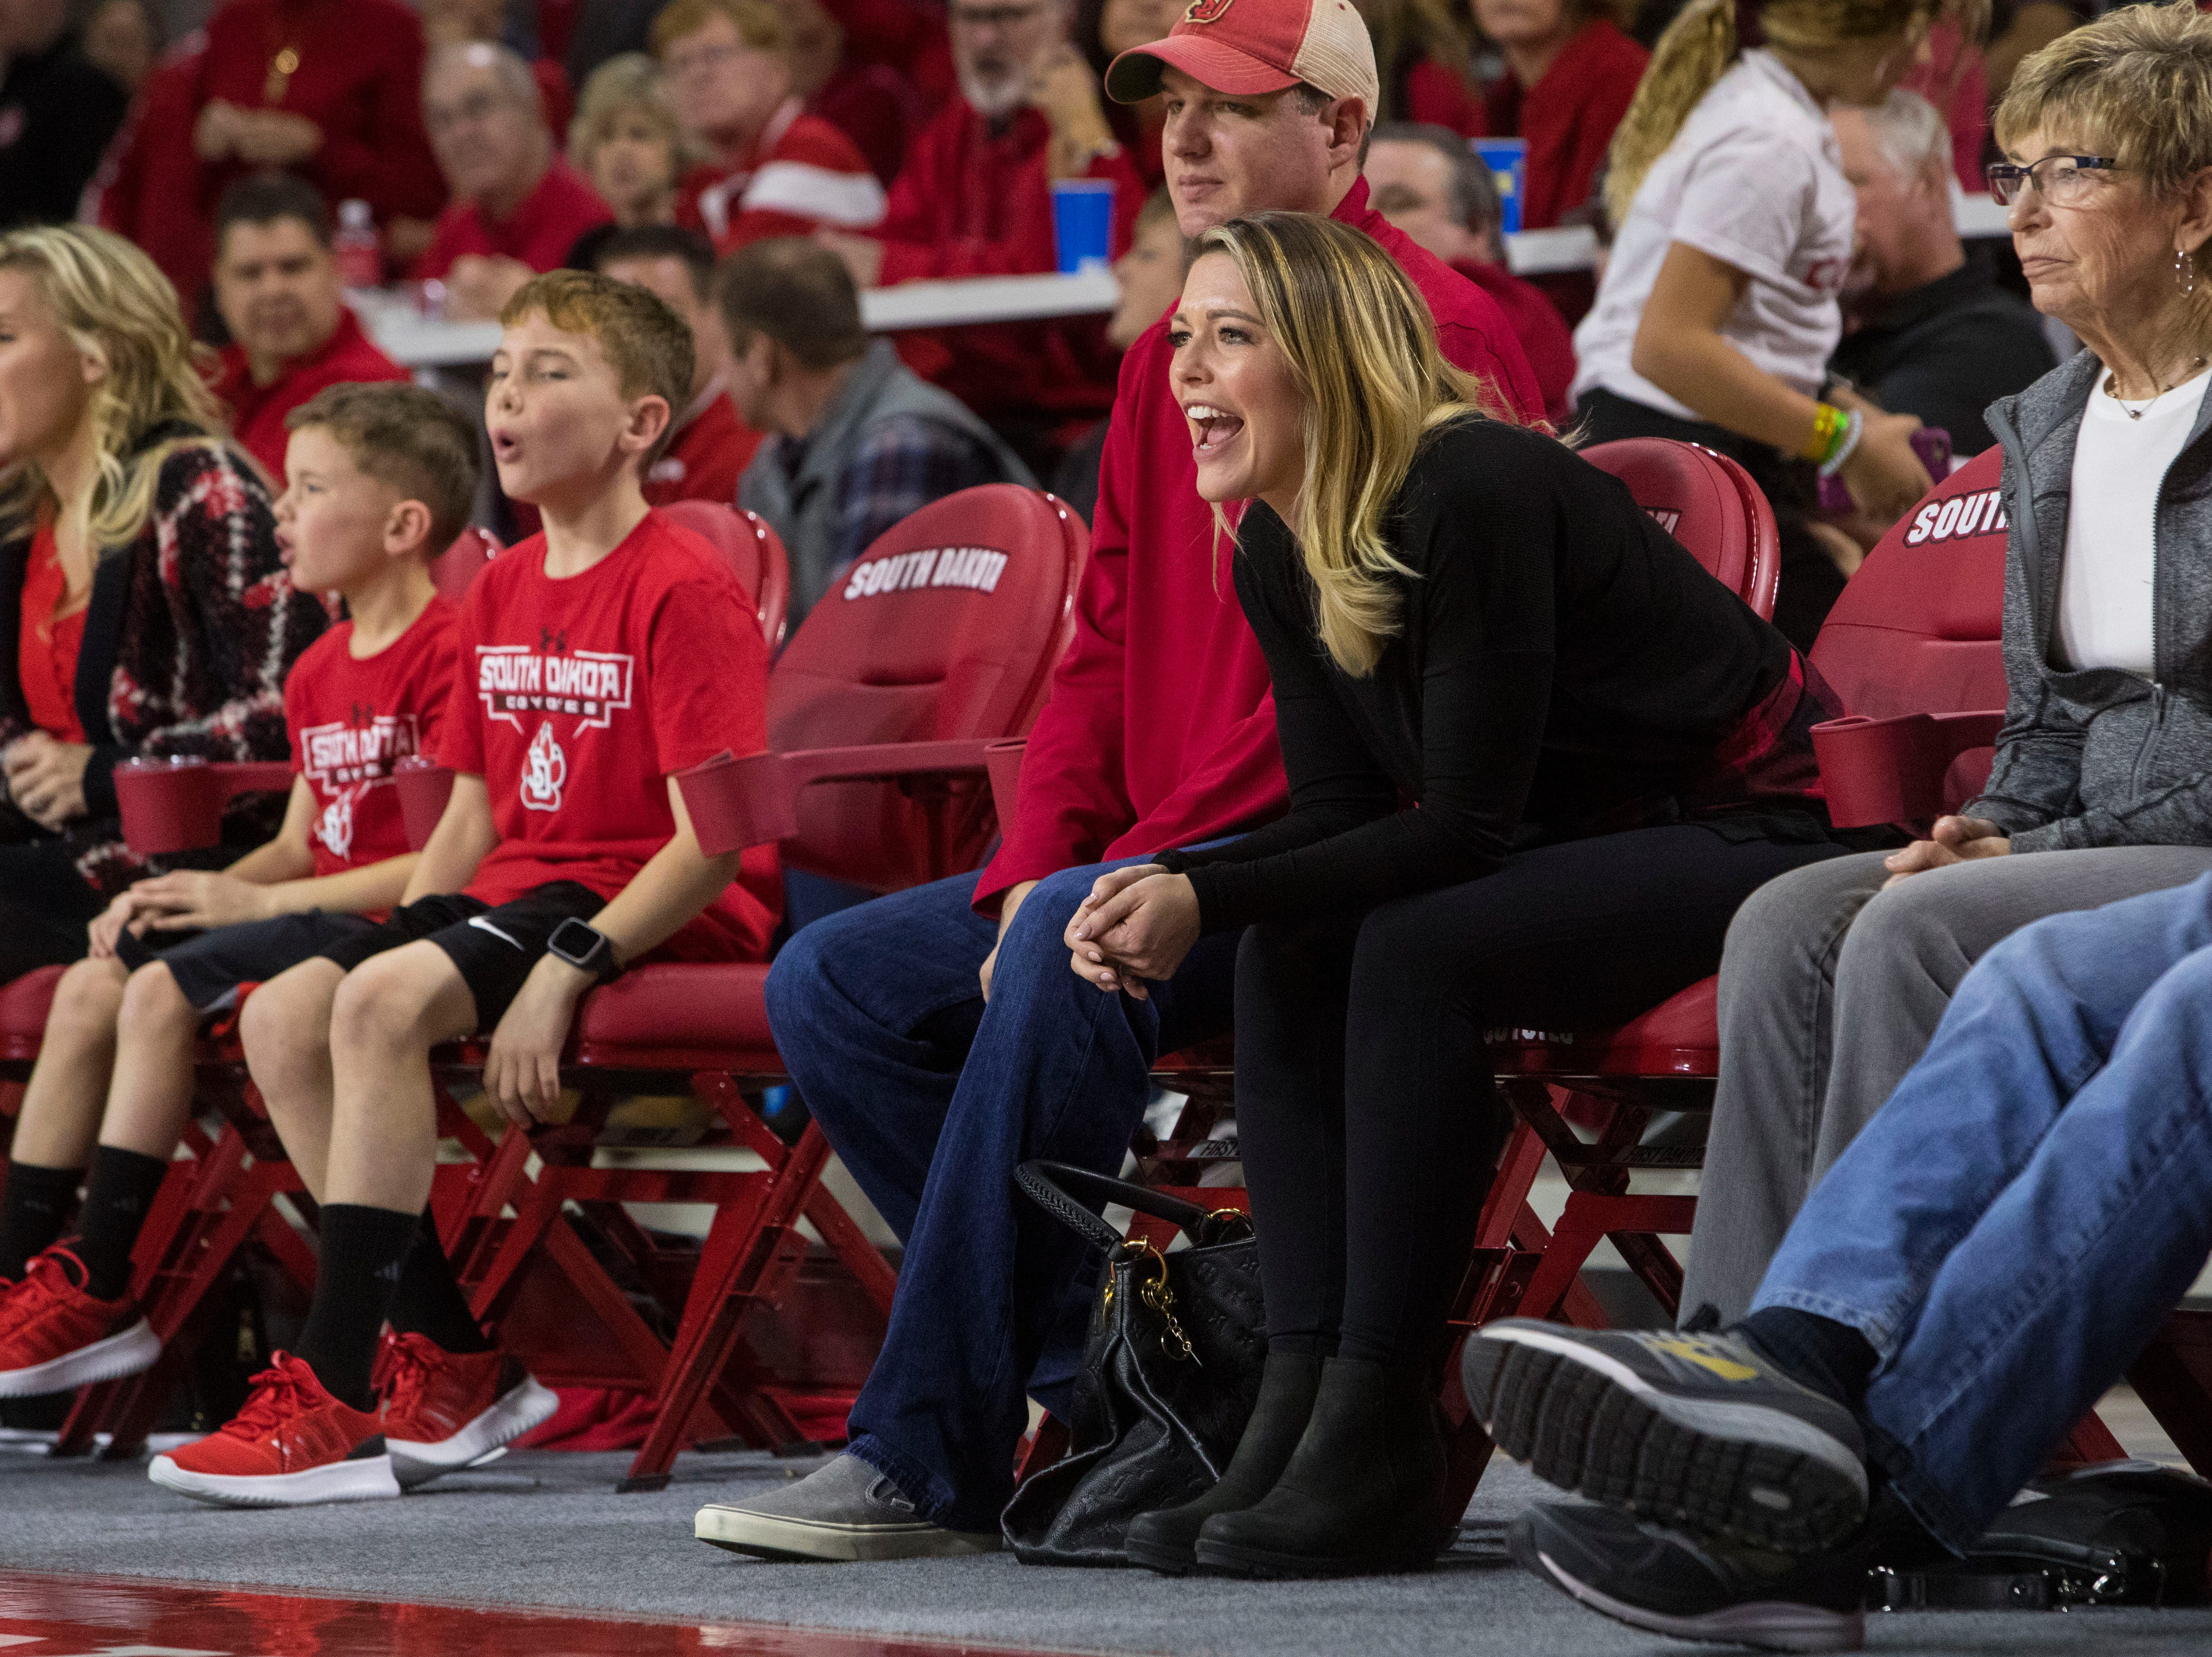 Audience members cheer for their team during the SDSU and USD game, Sunday, Jan. 6, 2019 in Vermillion, S.D.